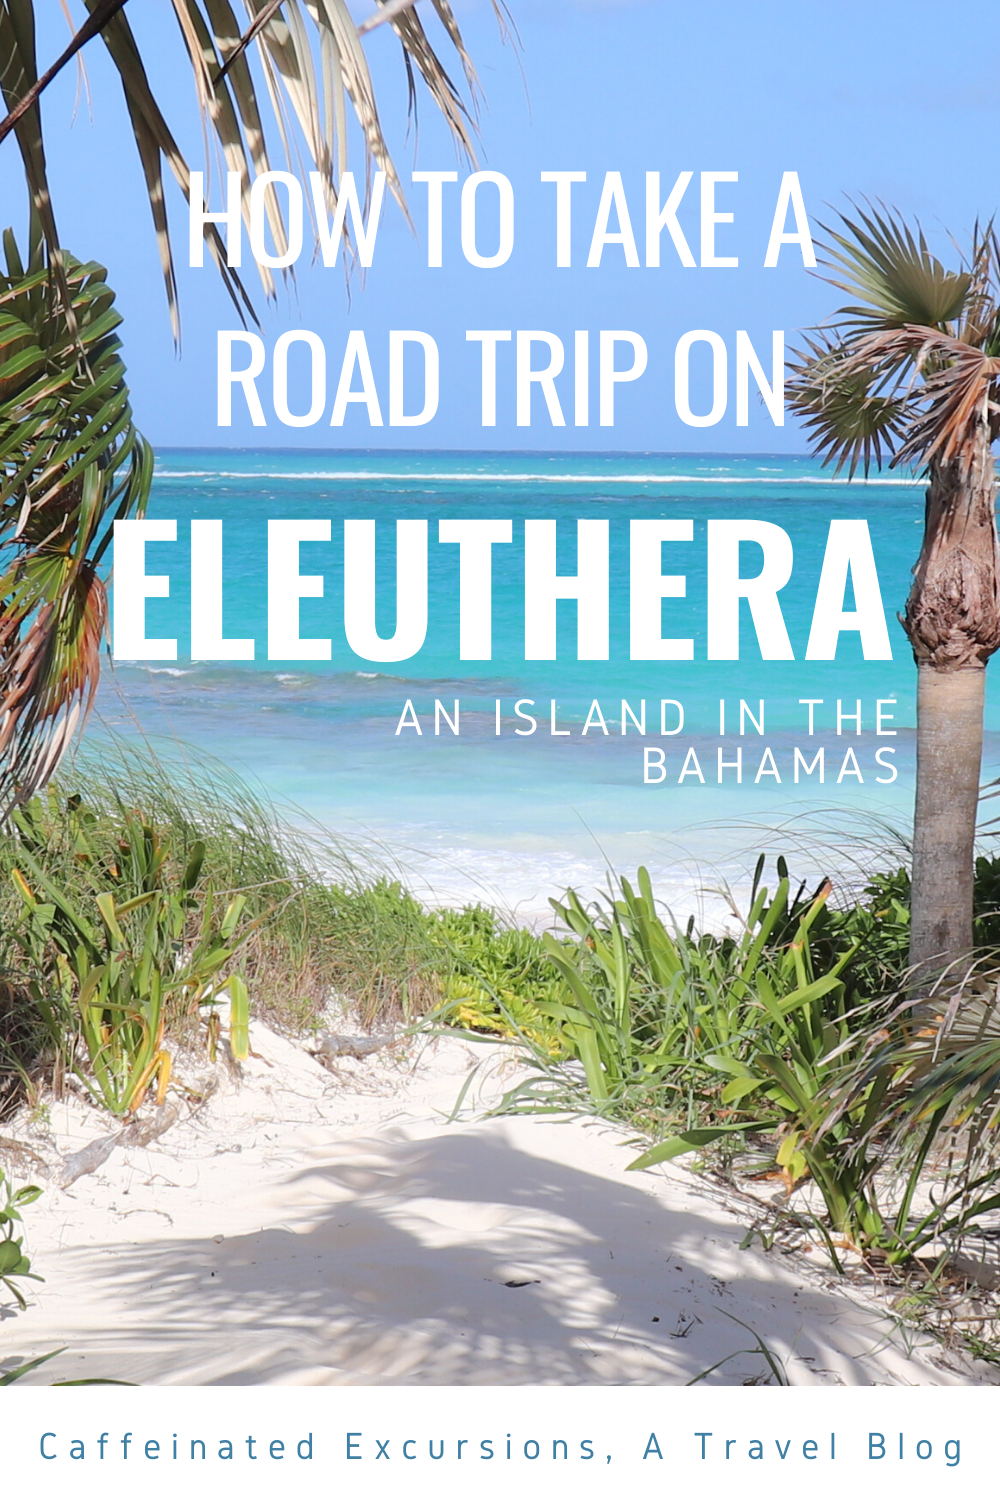 Eleuthera is an incredibly long and skinny island in the Bahamas that can be explored by car in just one weekend! Check out my blog post to learn more about this island paradise! #eleuthera #eleutheraroadtrip #roadtripeleuthera #roadtripbahamas #bahamas #outislands #outislandsbahamas #familyislands #familyislandsbahamas #visiteleuthera #bahamas #offthebeatenpathbahamas #visitthebahamas #visitbahamas #eleutheratravelguide #bahamastravelguide #caffeinatedexcursions